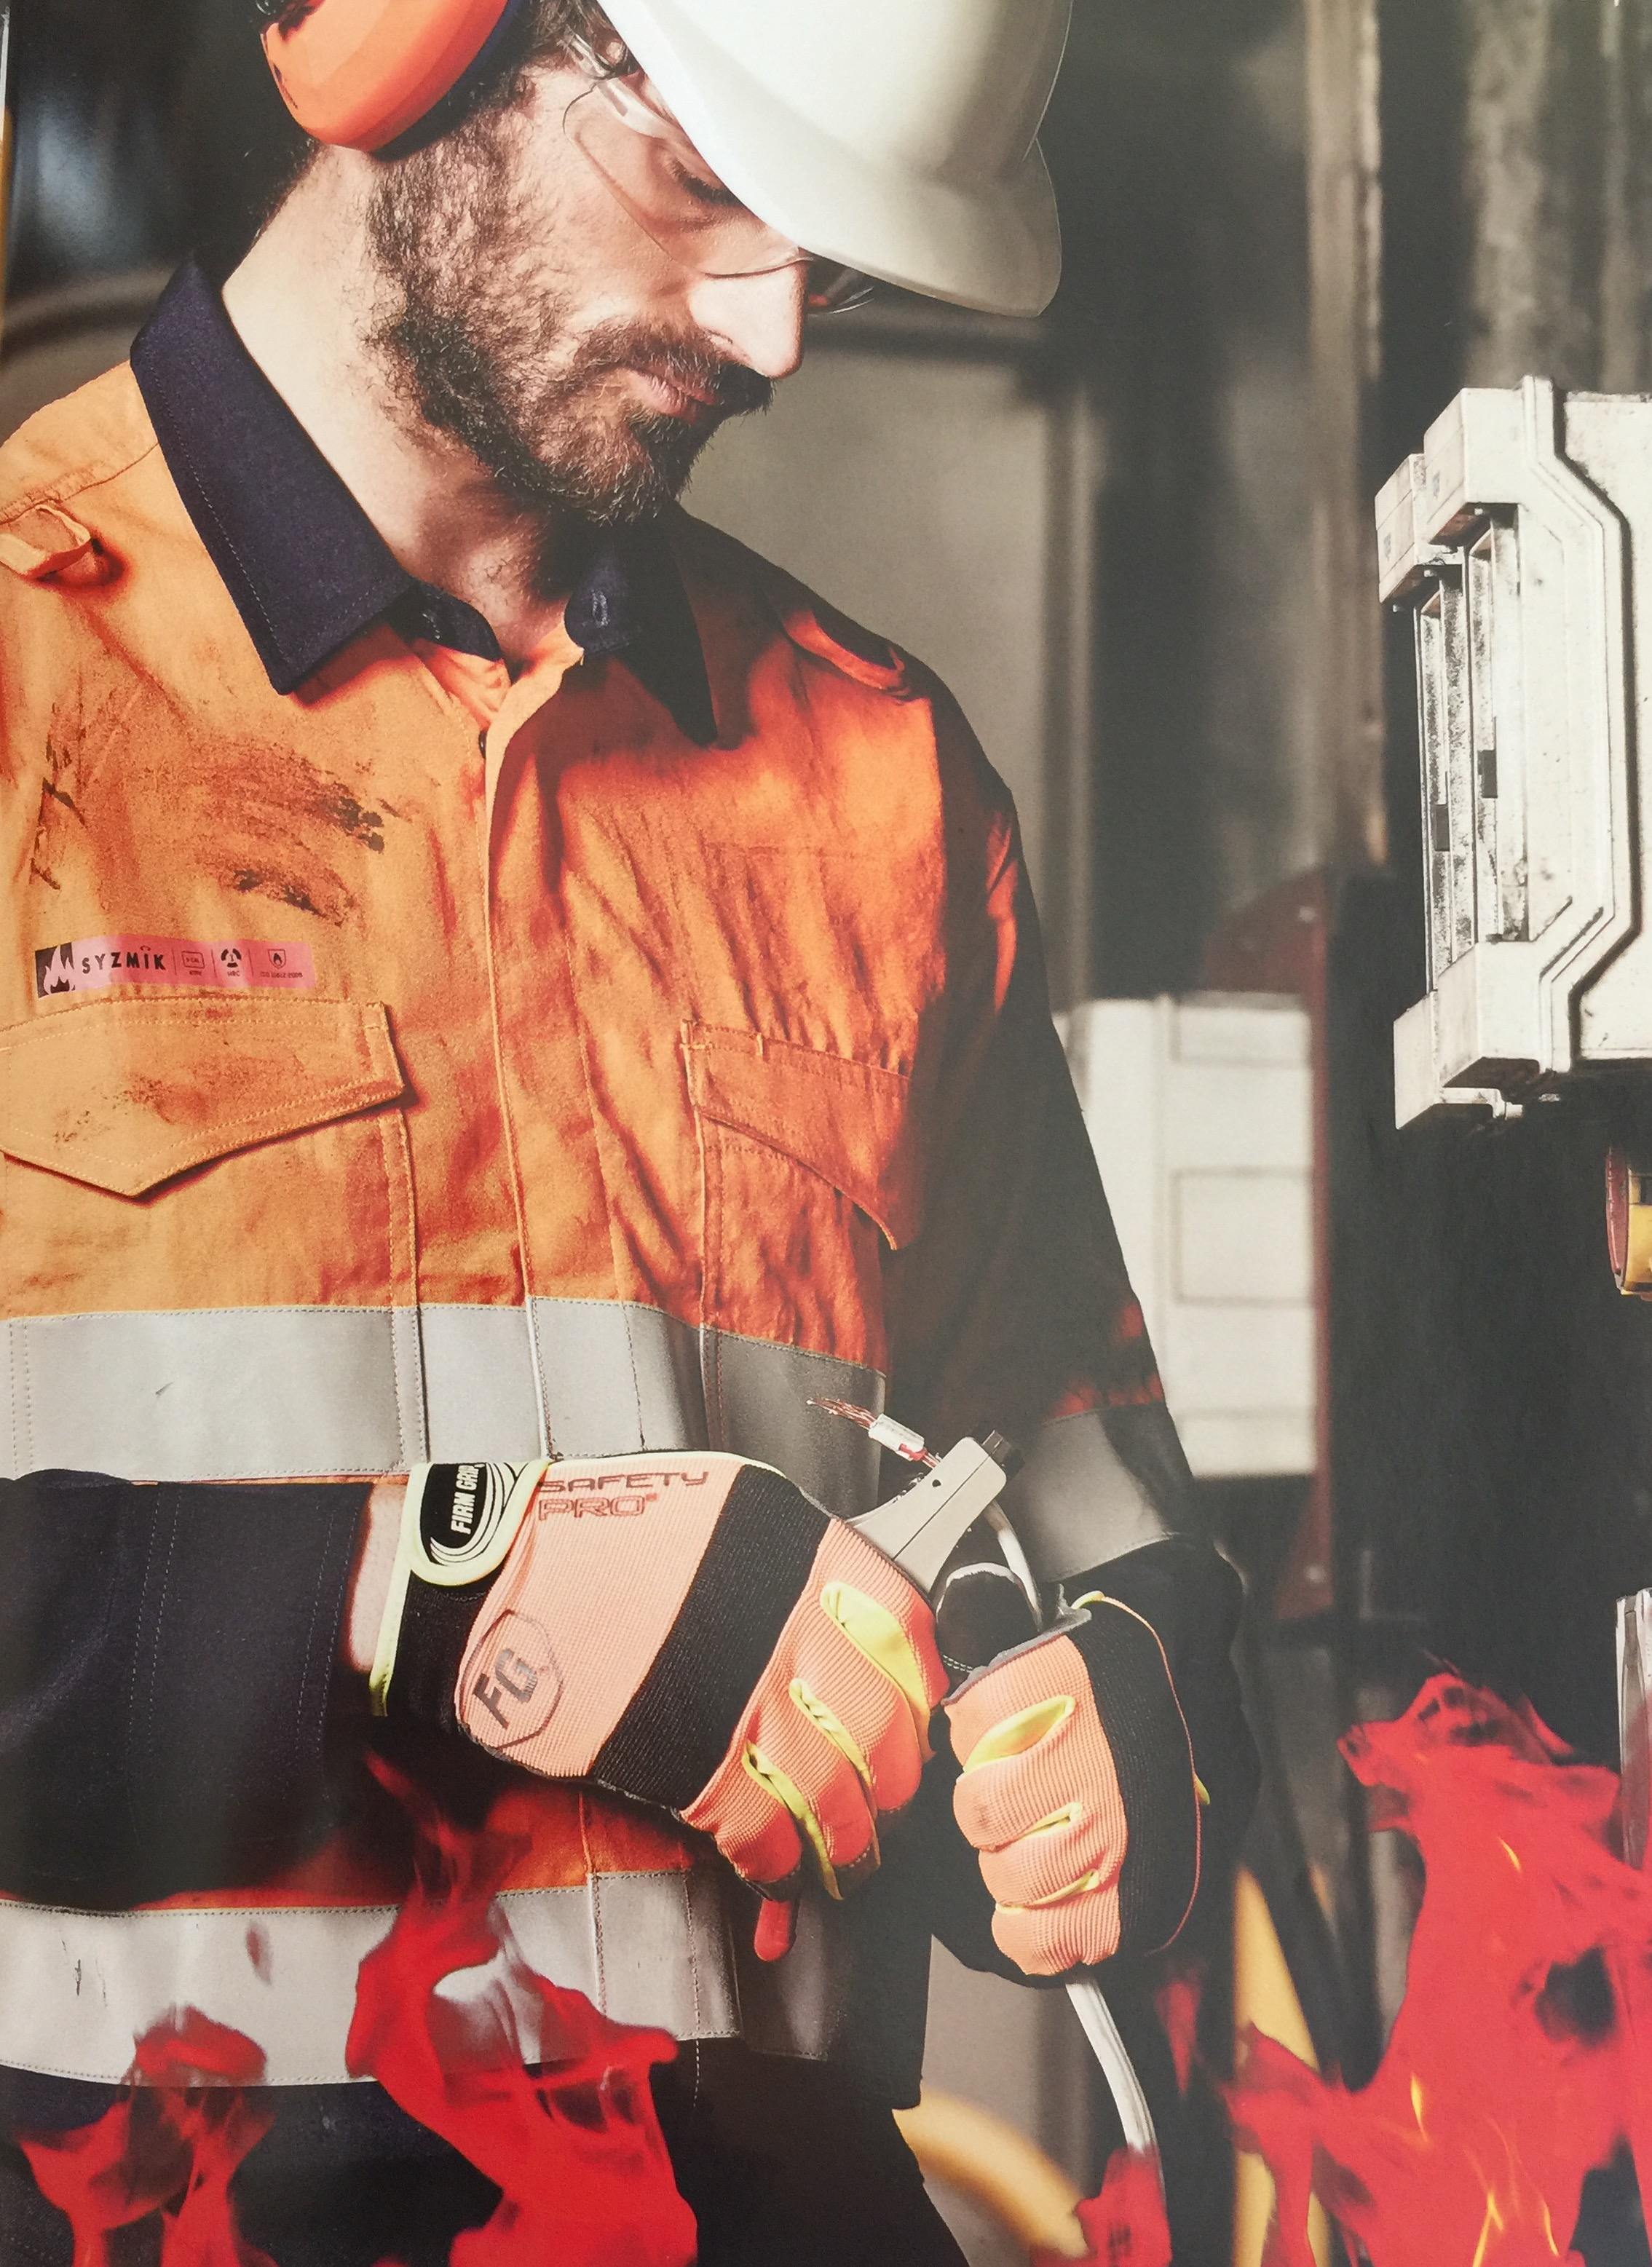 The Importance of Fire Amour (FR) Clothing in a High Risk Work Environment